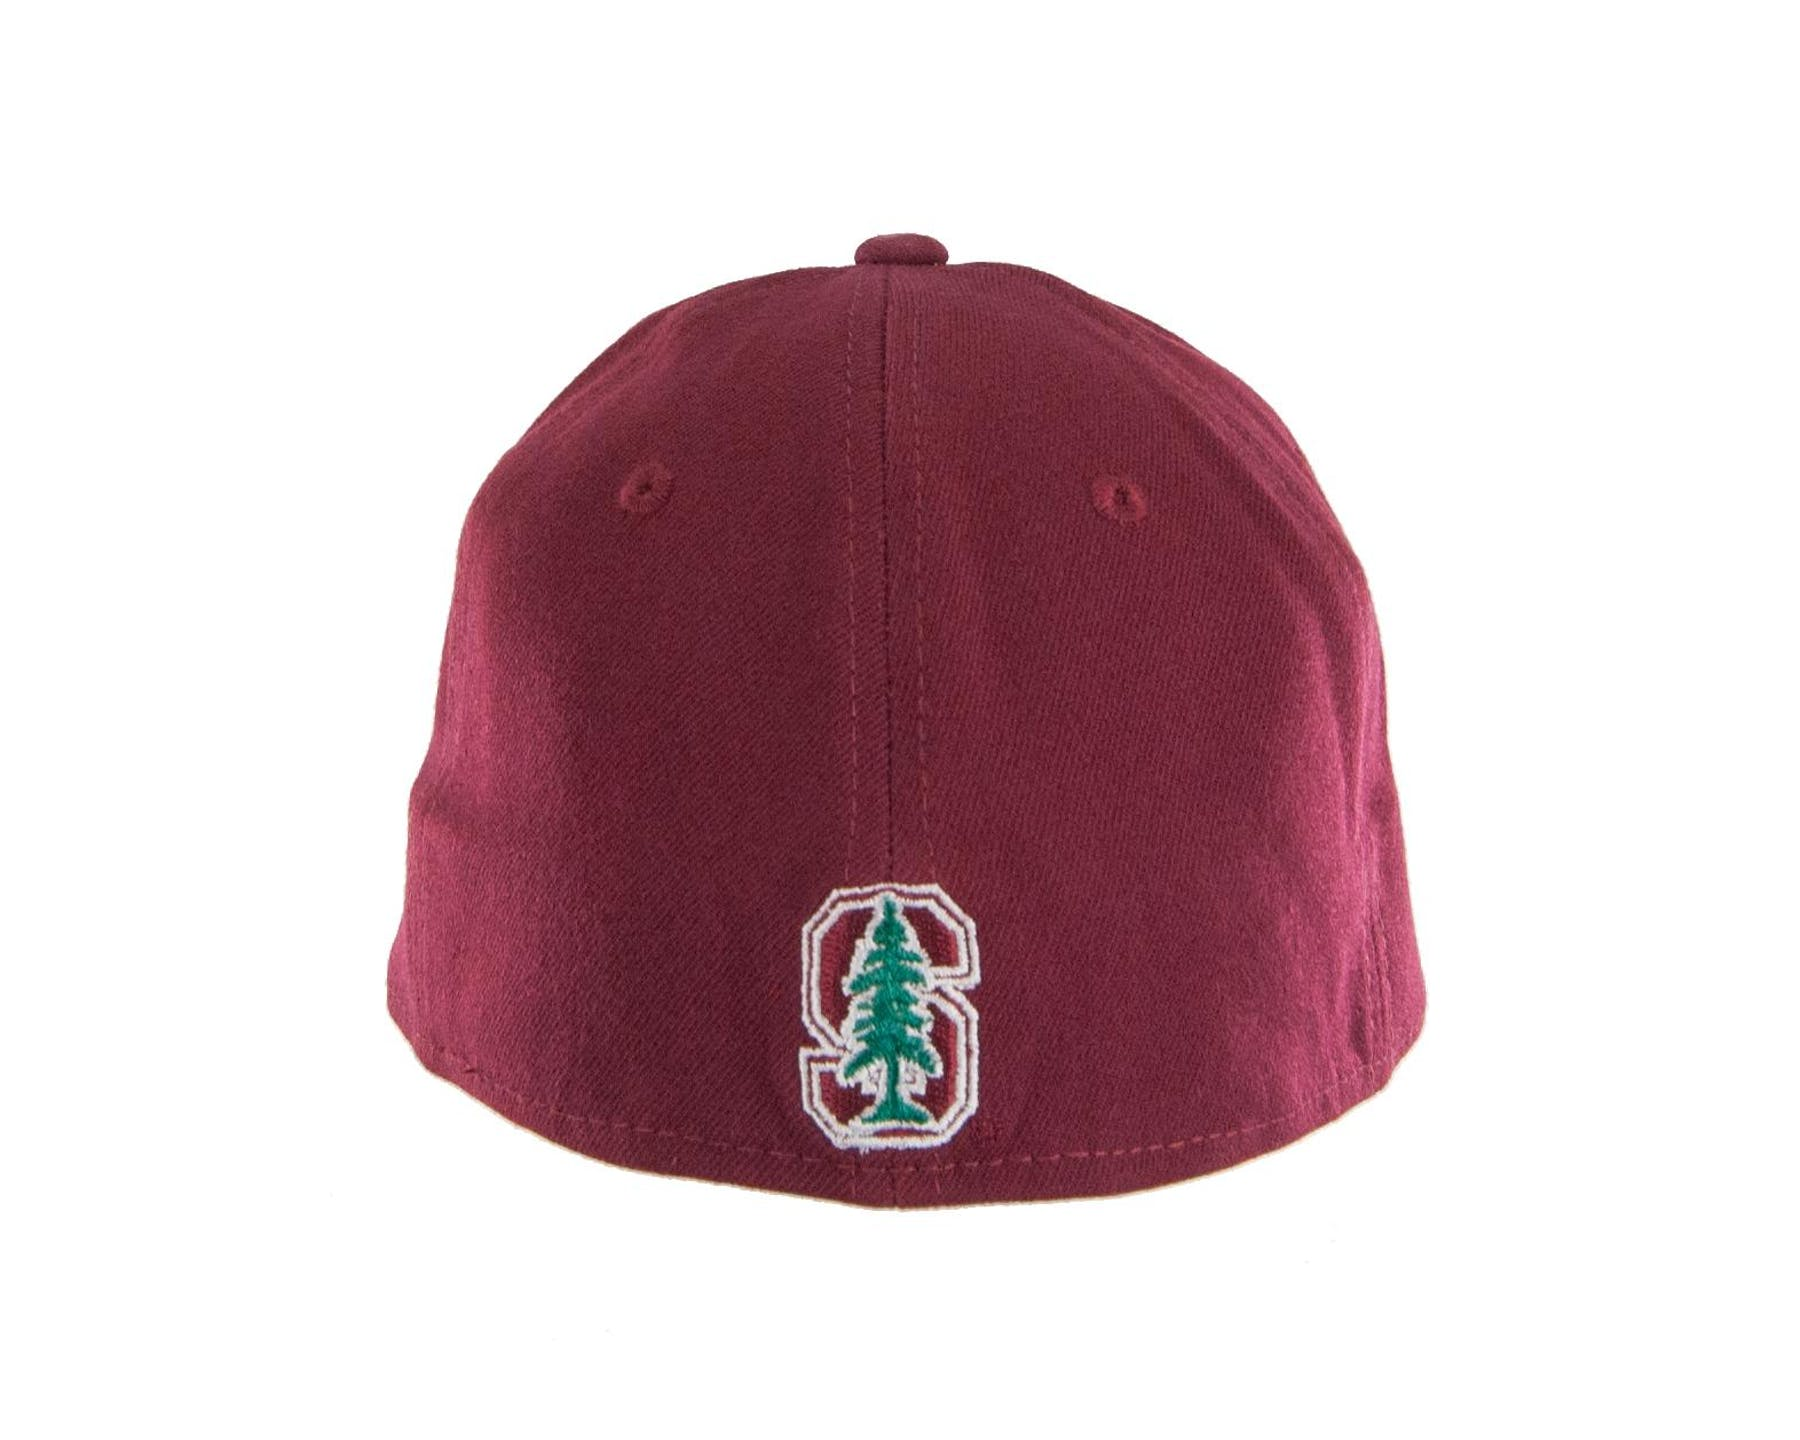 a2af74c117d Stanford Cardinal New Era 39Thirty Team Classic Maroon Flex Fit Hat (Adult  S M)